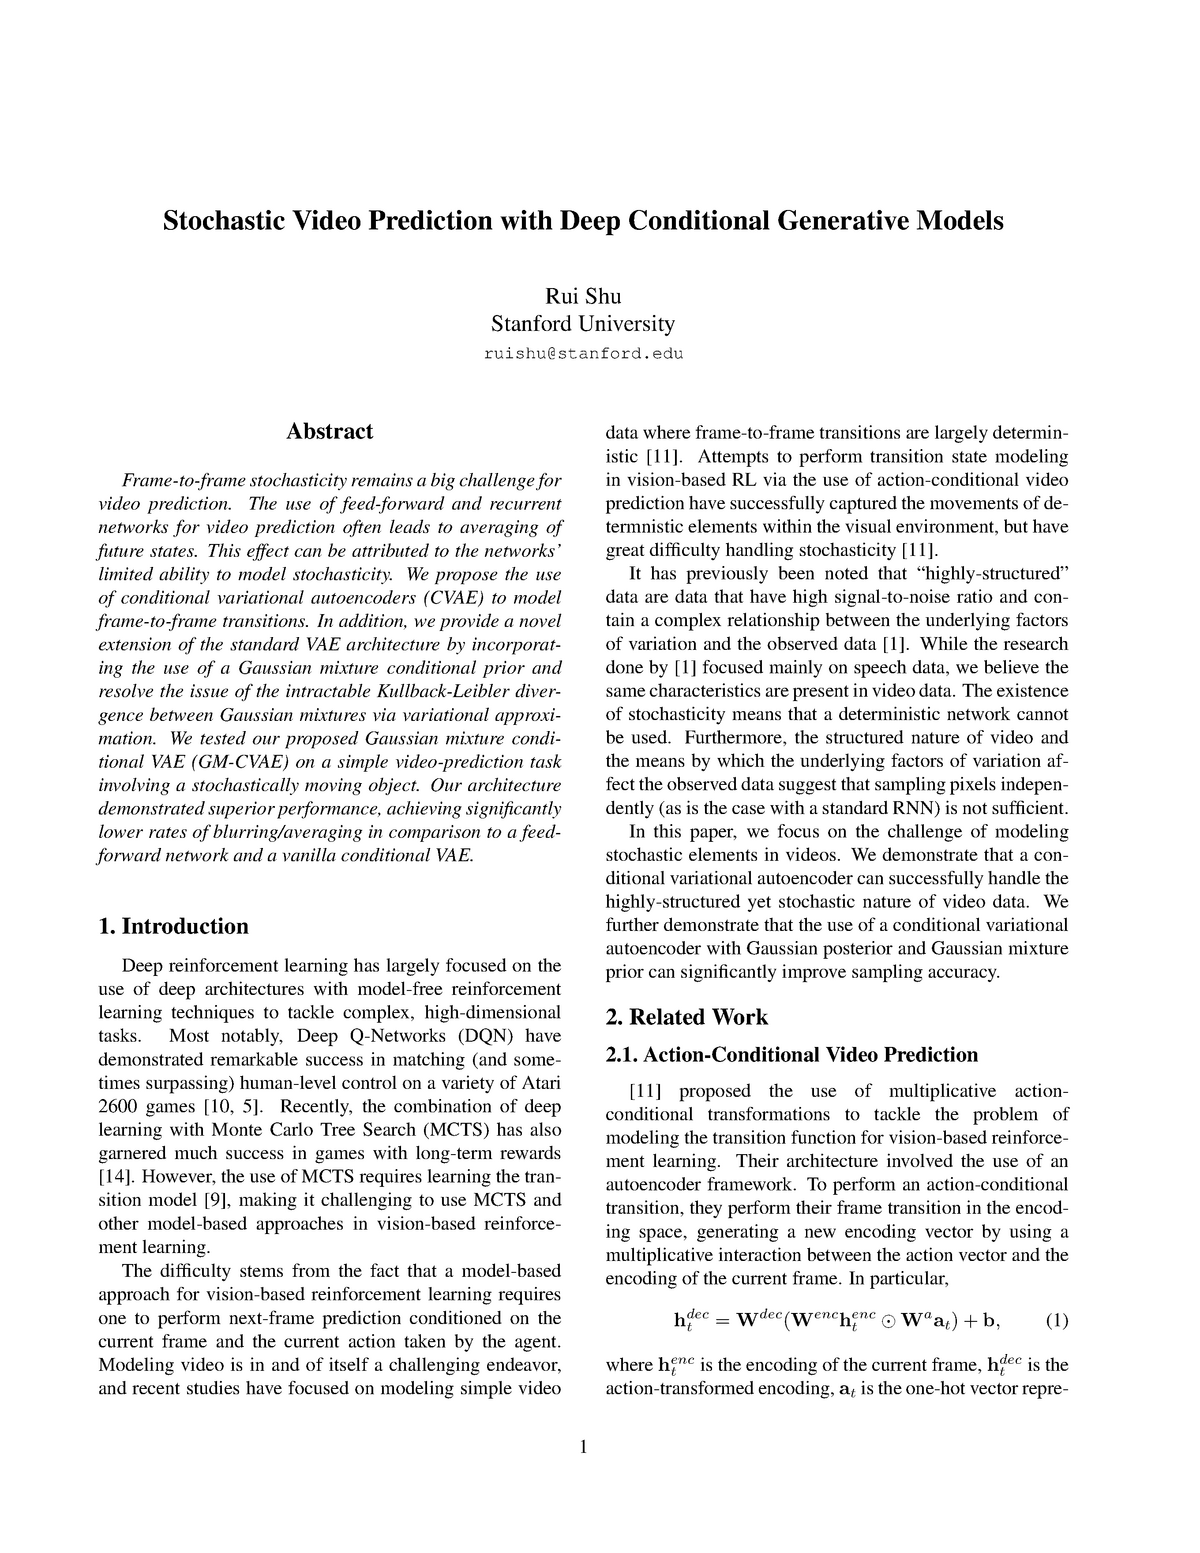 Stochastic video prediction with deep conditional generative models